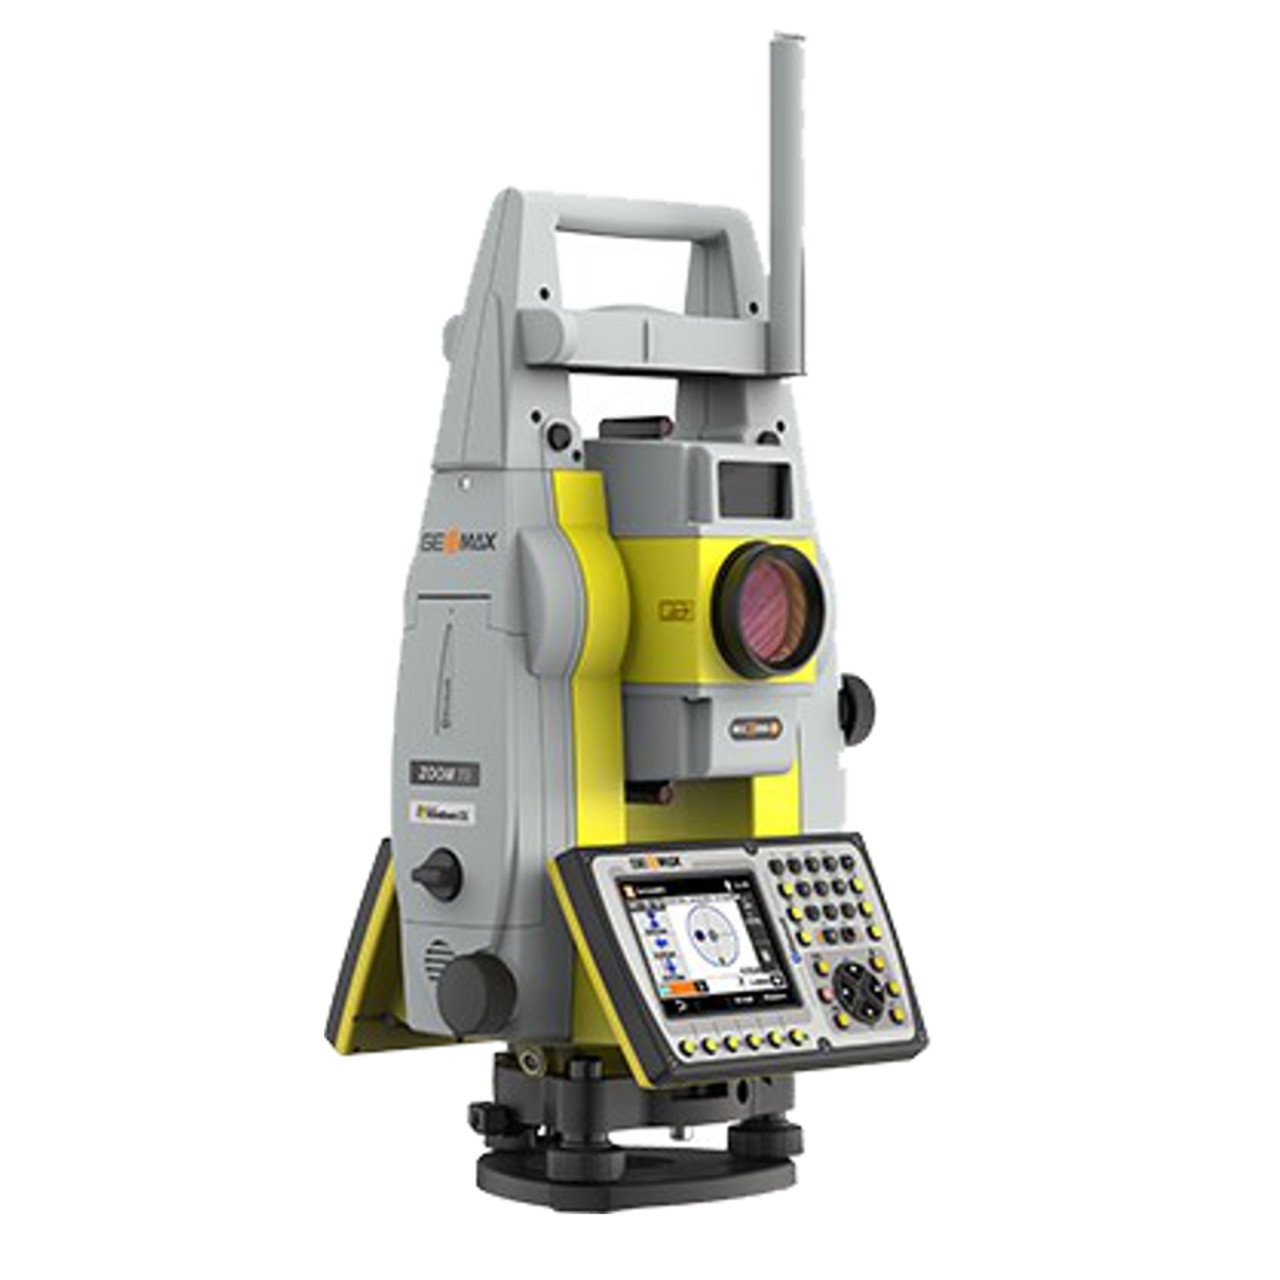 GeoMax Zoom70 Robotic Total Station